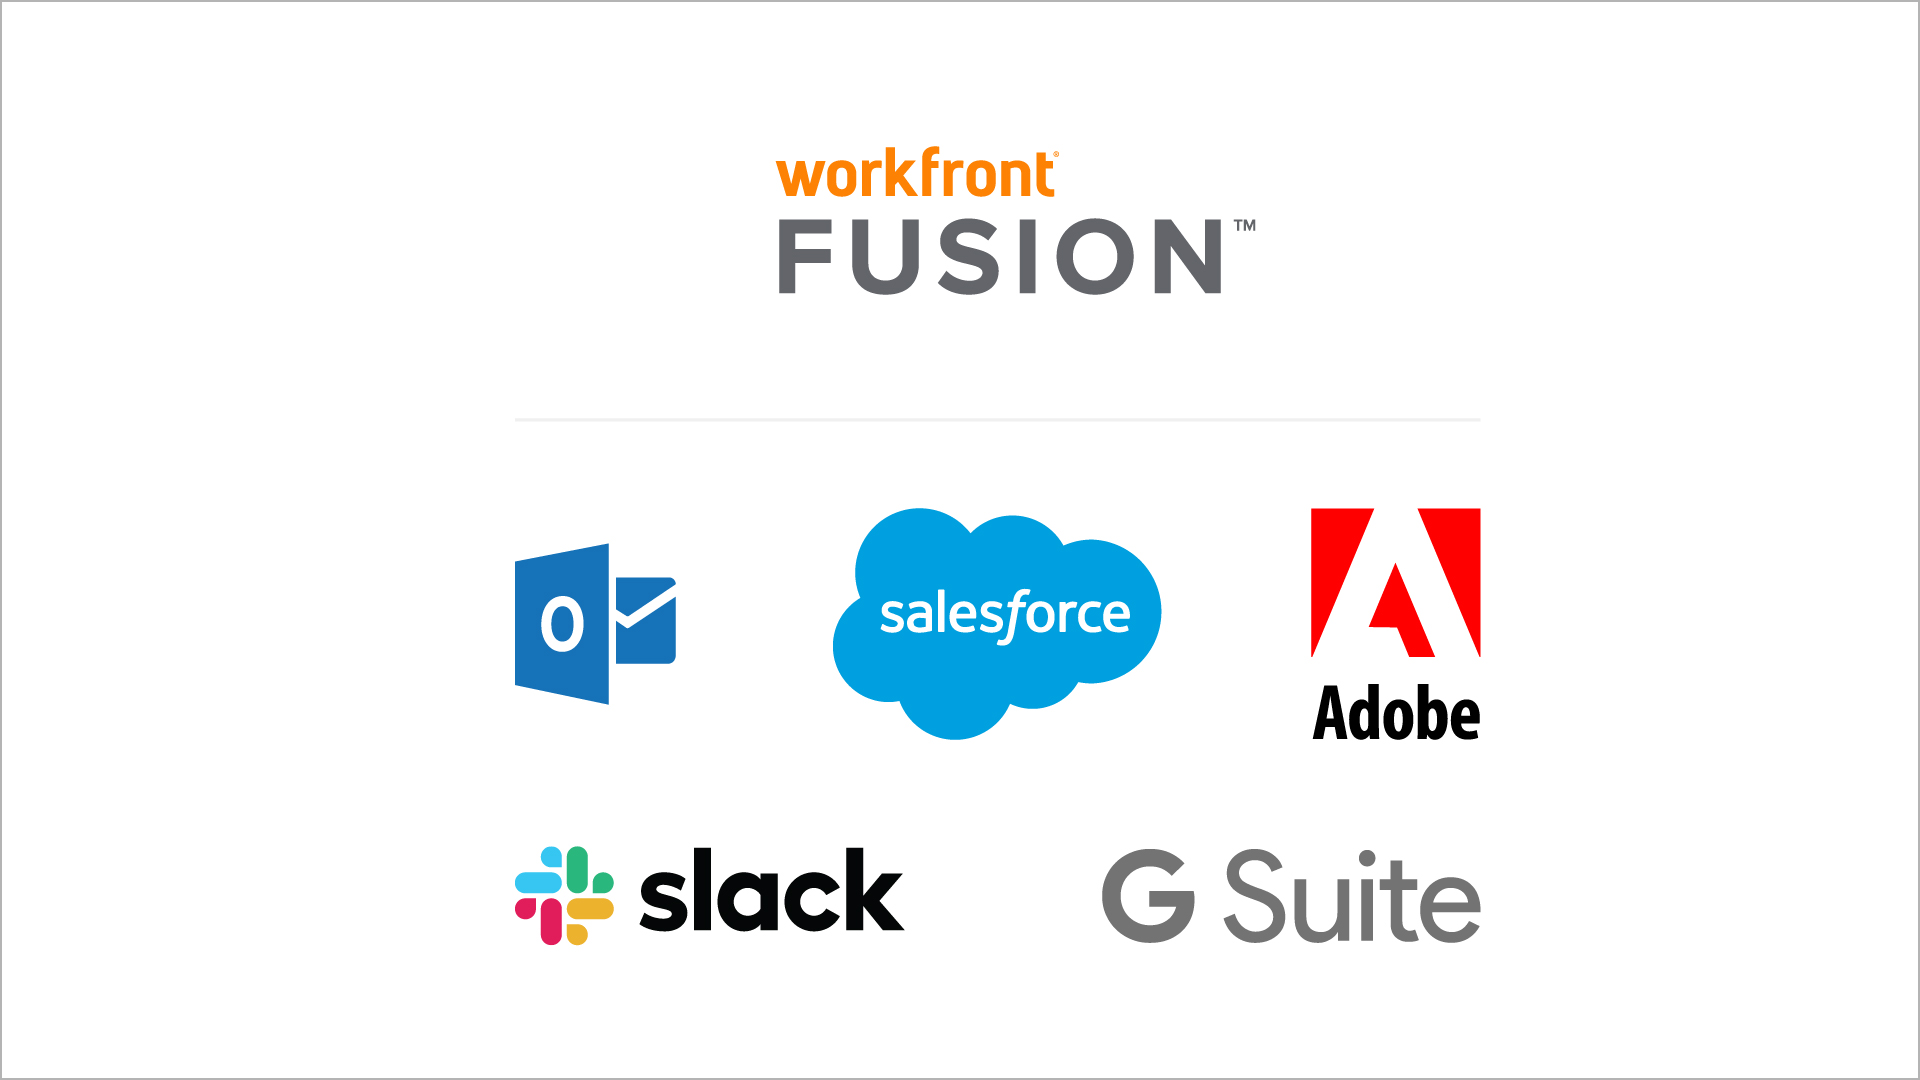 Salesforce, Adobe, Slack, G-Suite logos